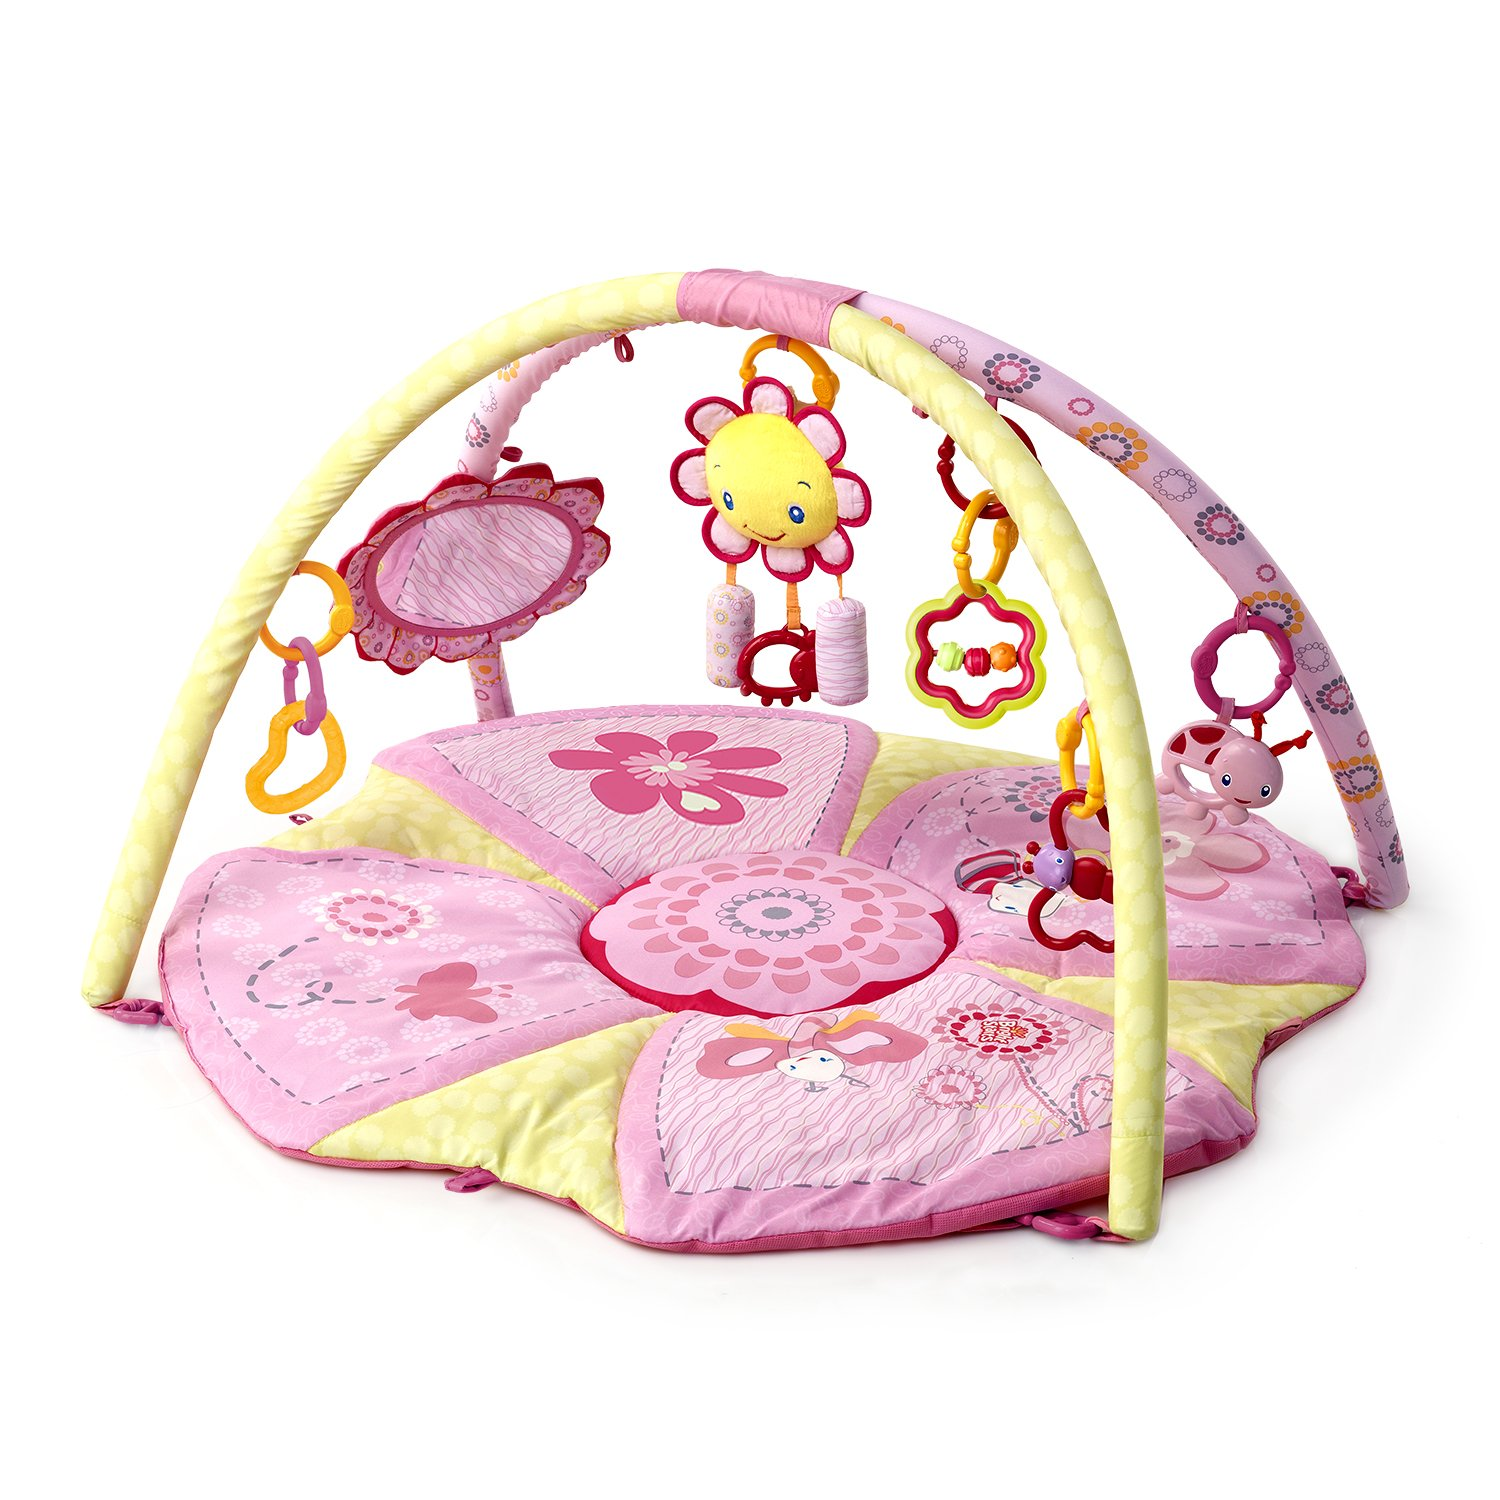 New Toy Bright Starts Pretty In Pink Supreme Play Gym